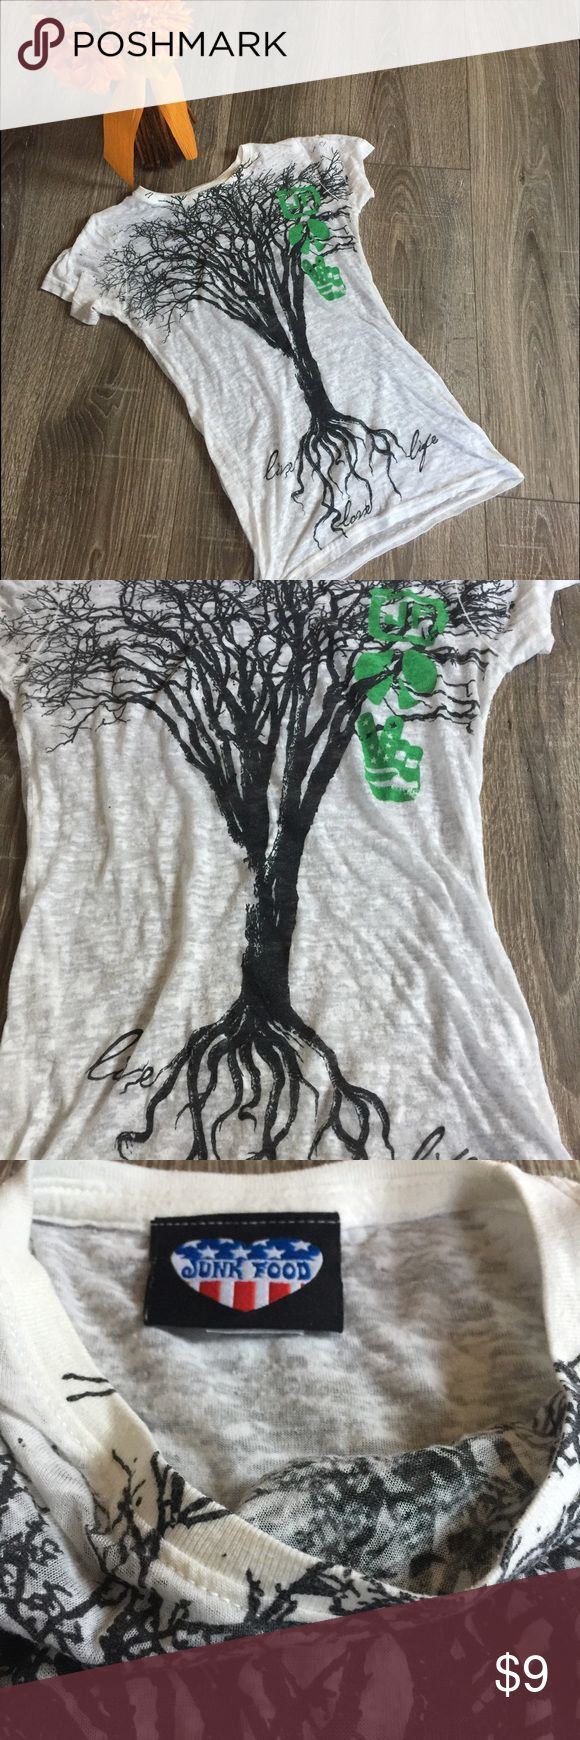 Junk Food Live Love Life Tree Burnout T-Shirt Top Burnout Junk Food top. Labeled M fits small too. Good used condition. Junk Food Tops Tees - Short Sleeve